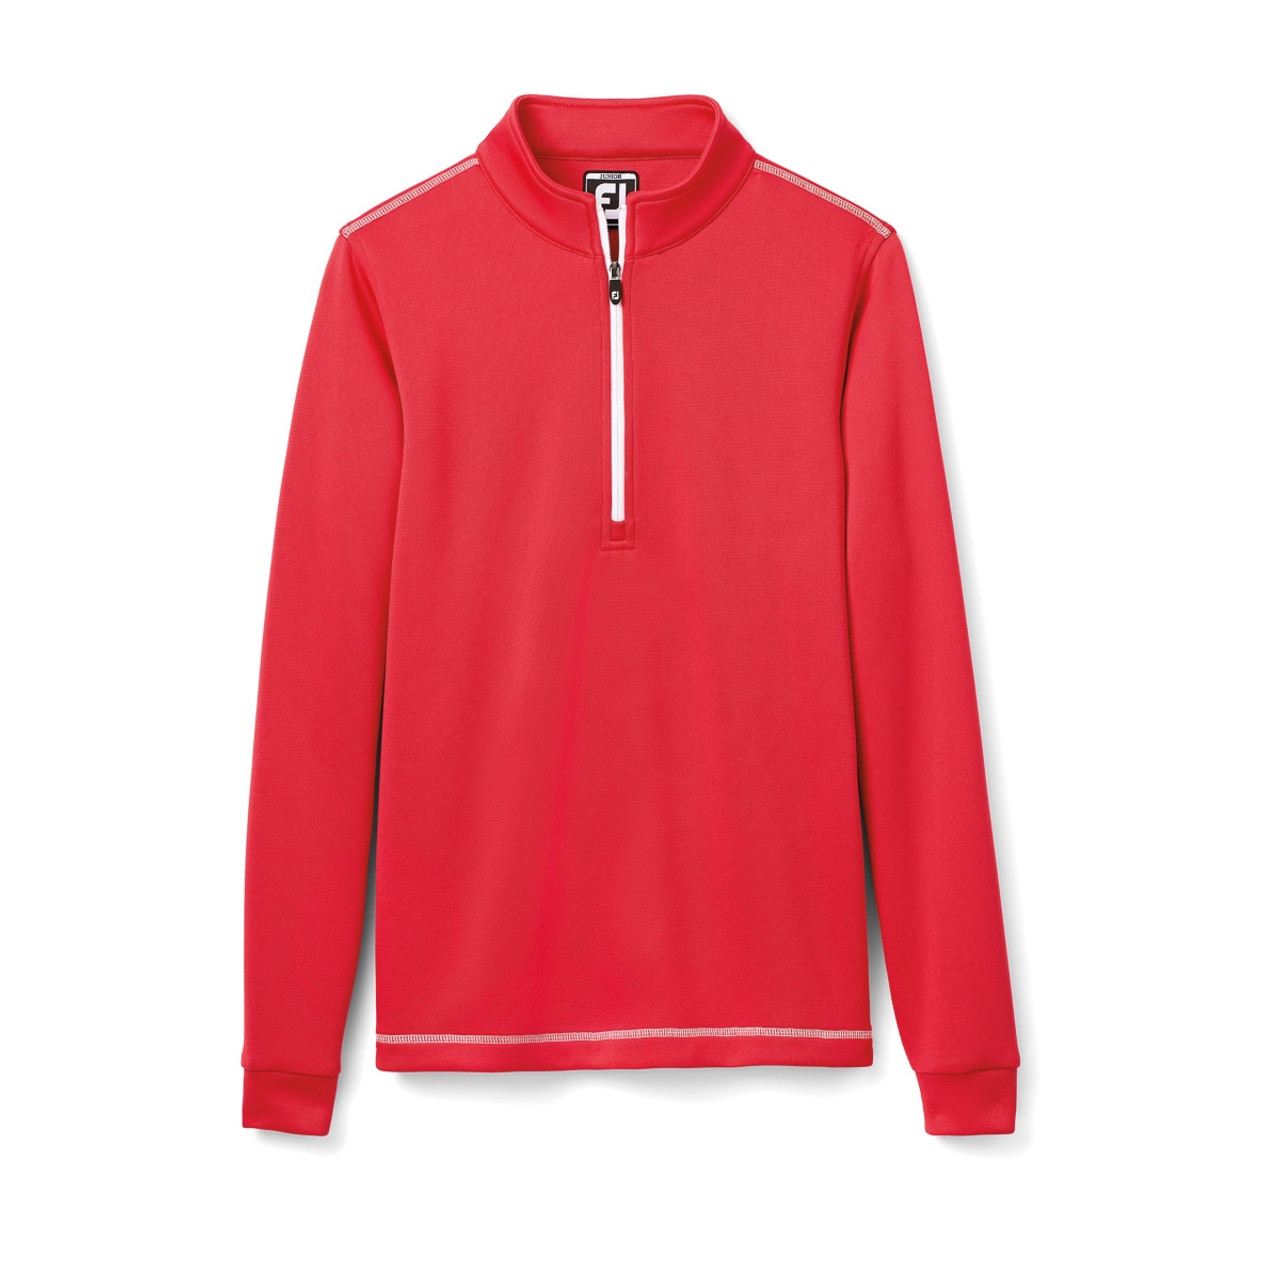 FootJoy Junior Half-Zip Contrast Stitch Mid-Layer - Red (25199)